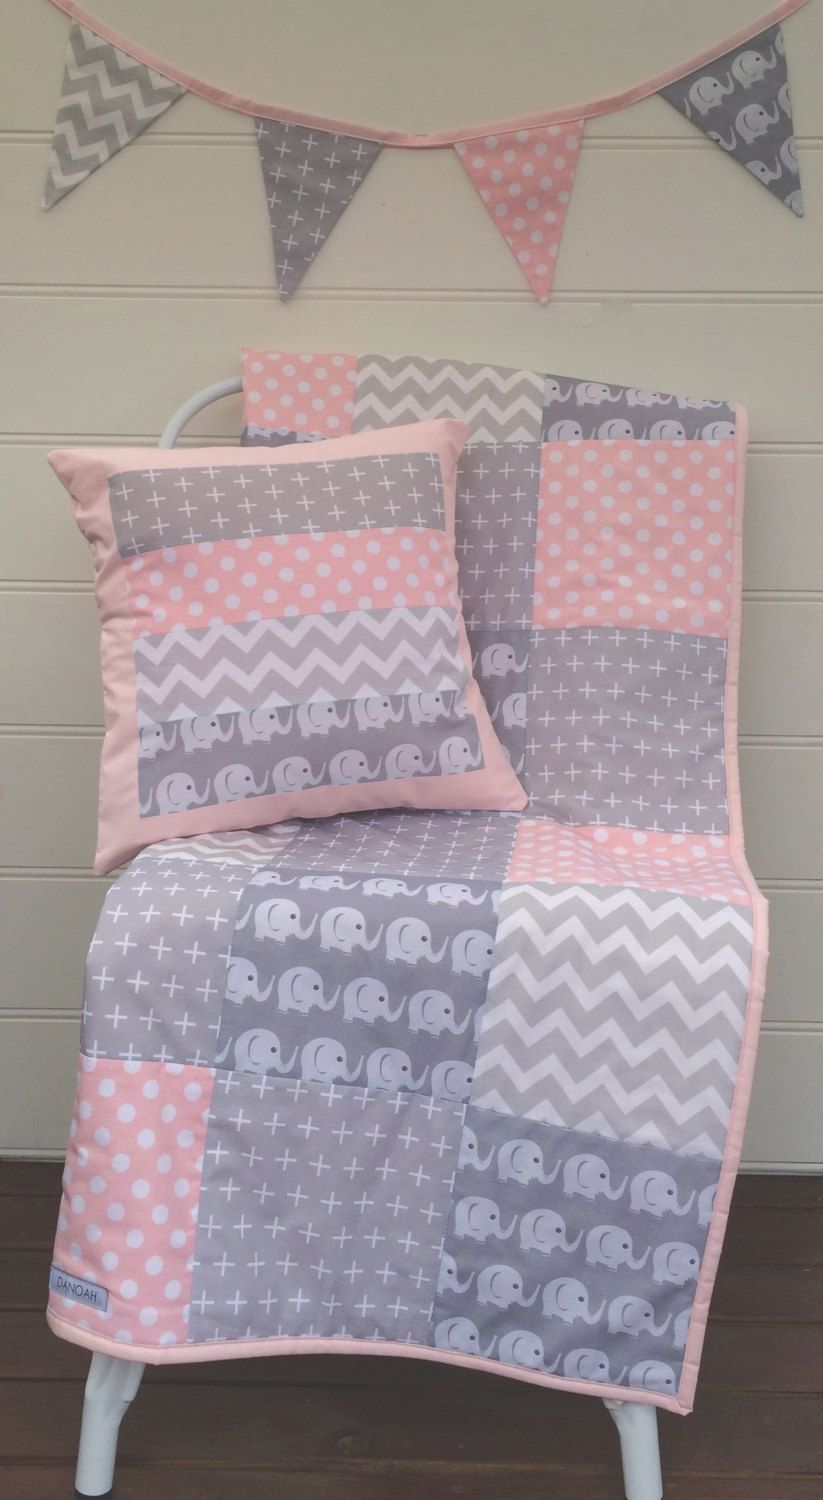 Patchwork cot quilt in Pink and Grey Elephants | Minis, Patchwork ...